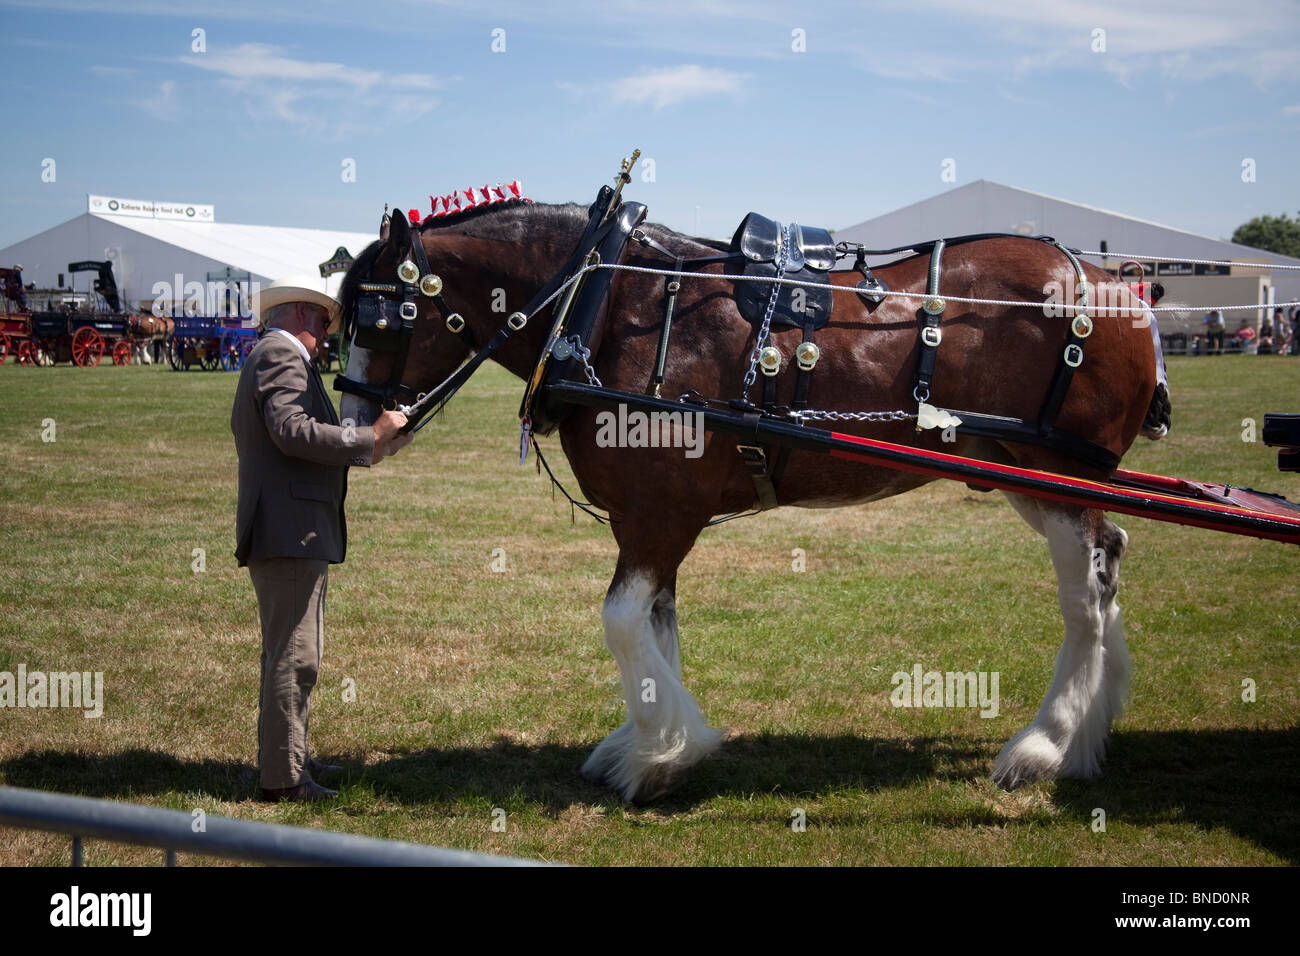 Man with shire horse at Cheshire Show, Knutsford, England. - Stock Image